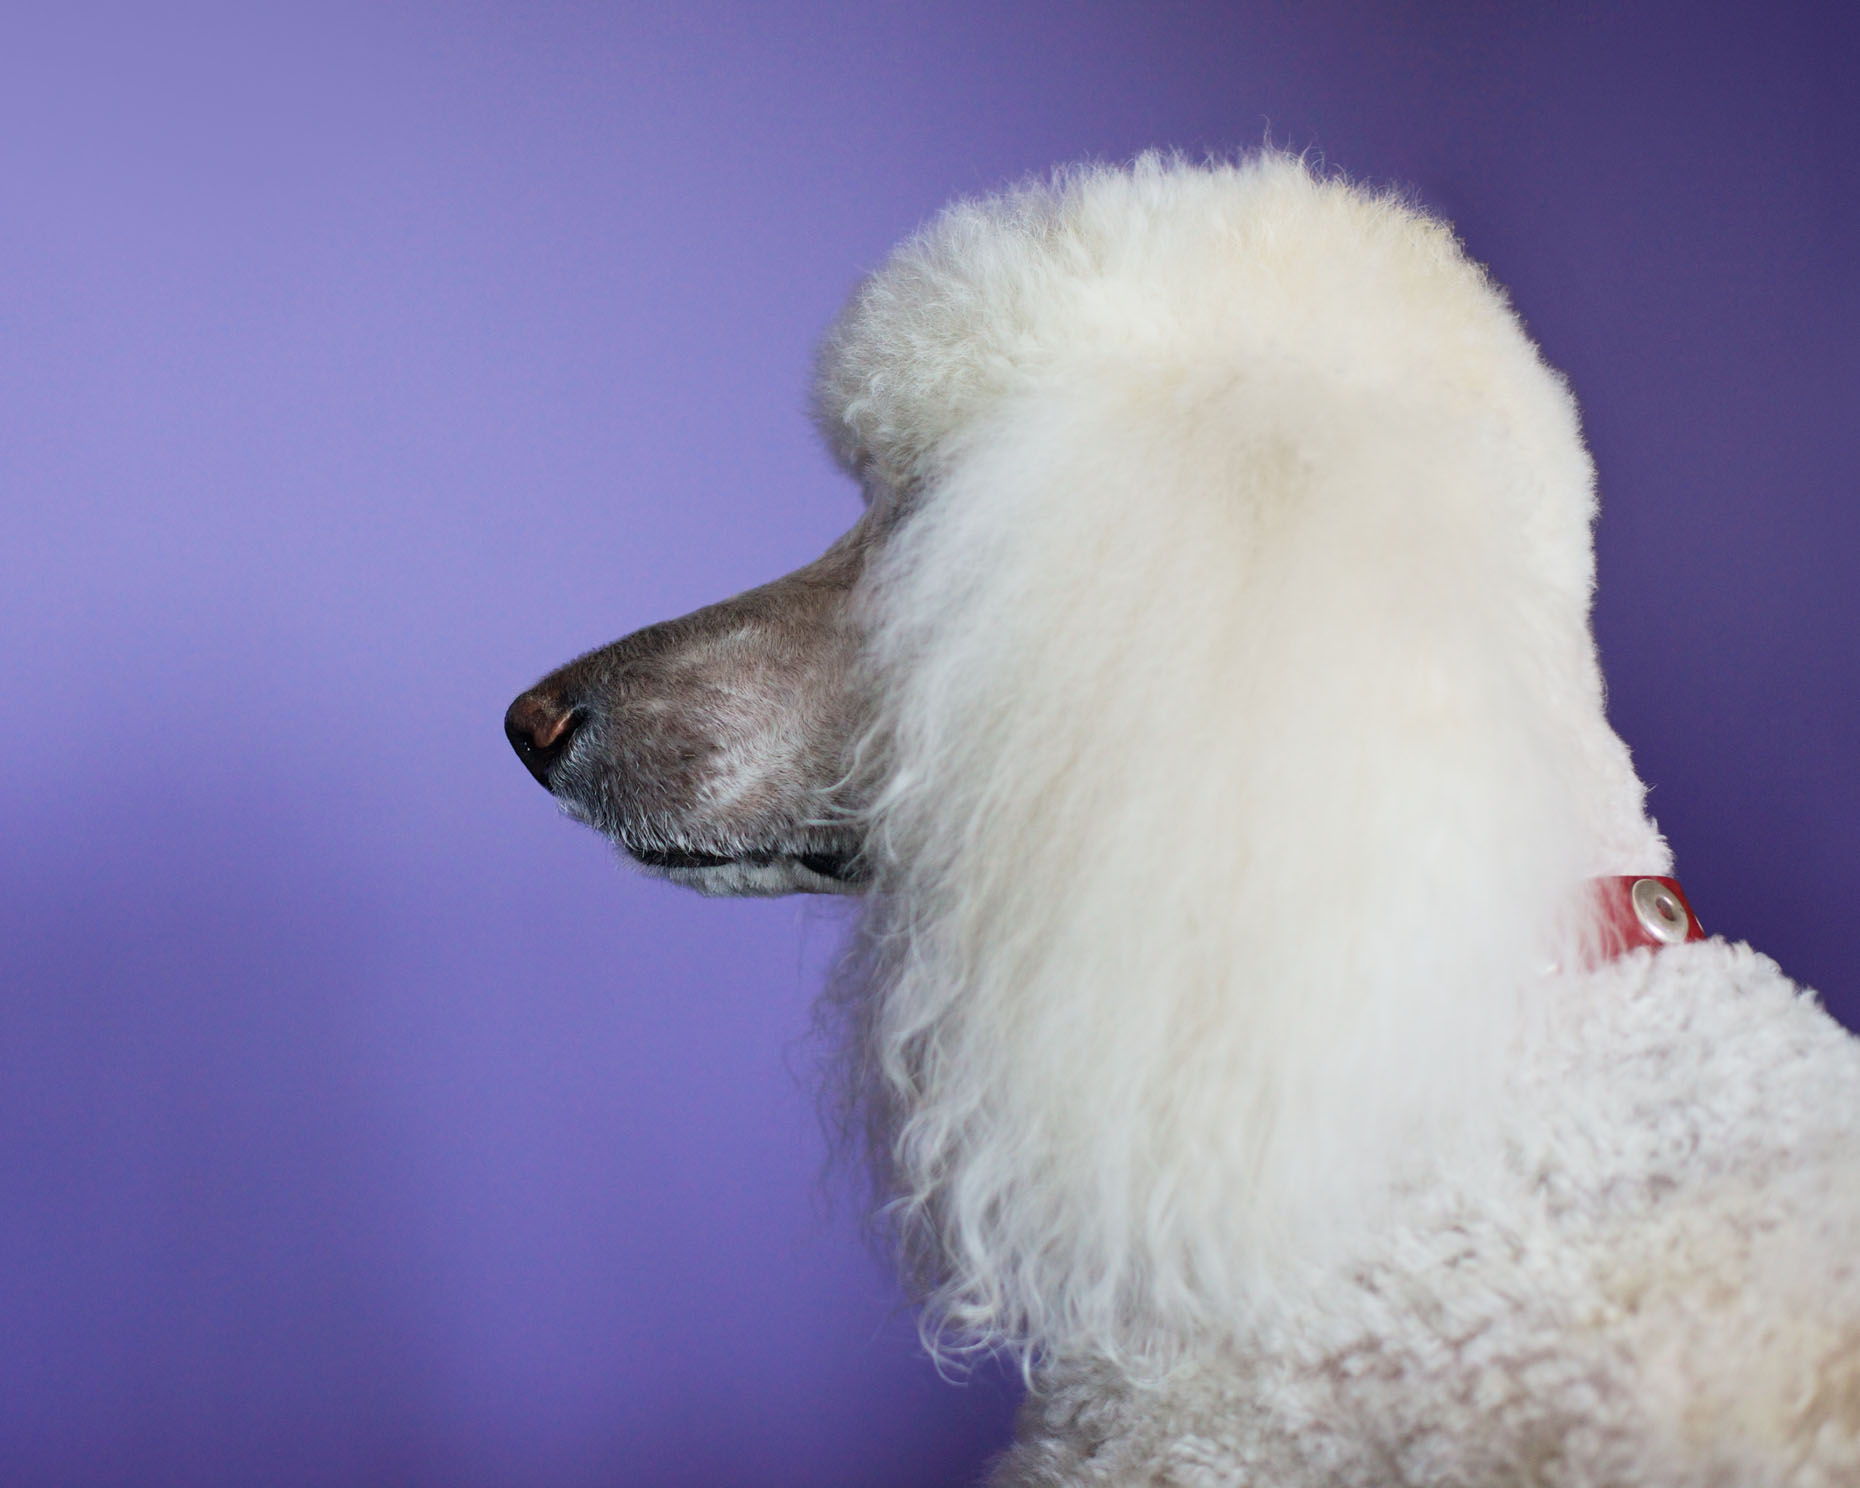 Commercial Pet Photography  |  Poodle Profile by Mark Rogers